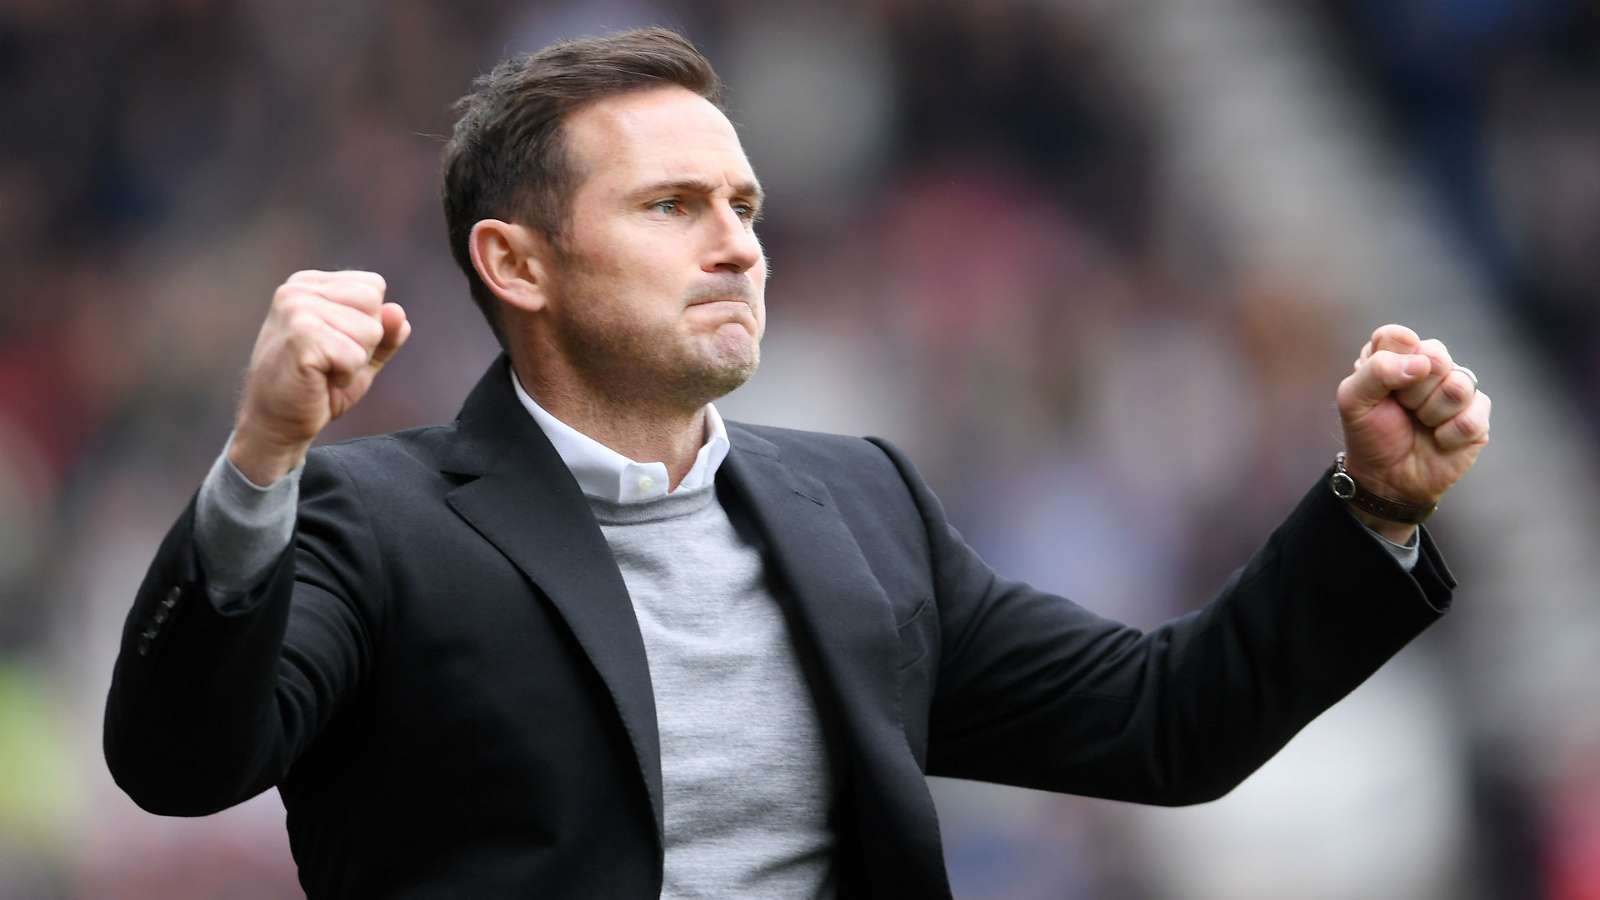 Chelsea to Meet Lampard Over Manager Role